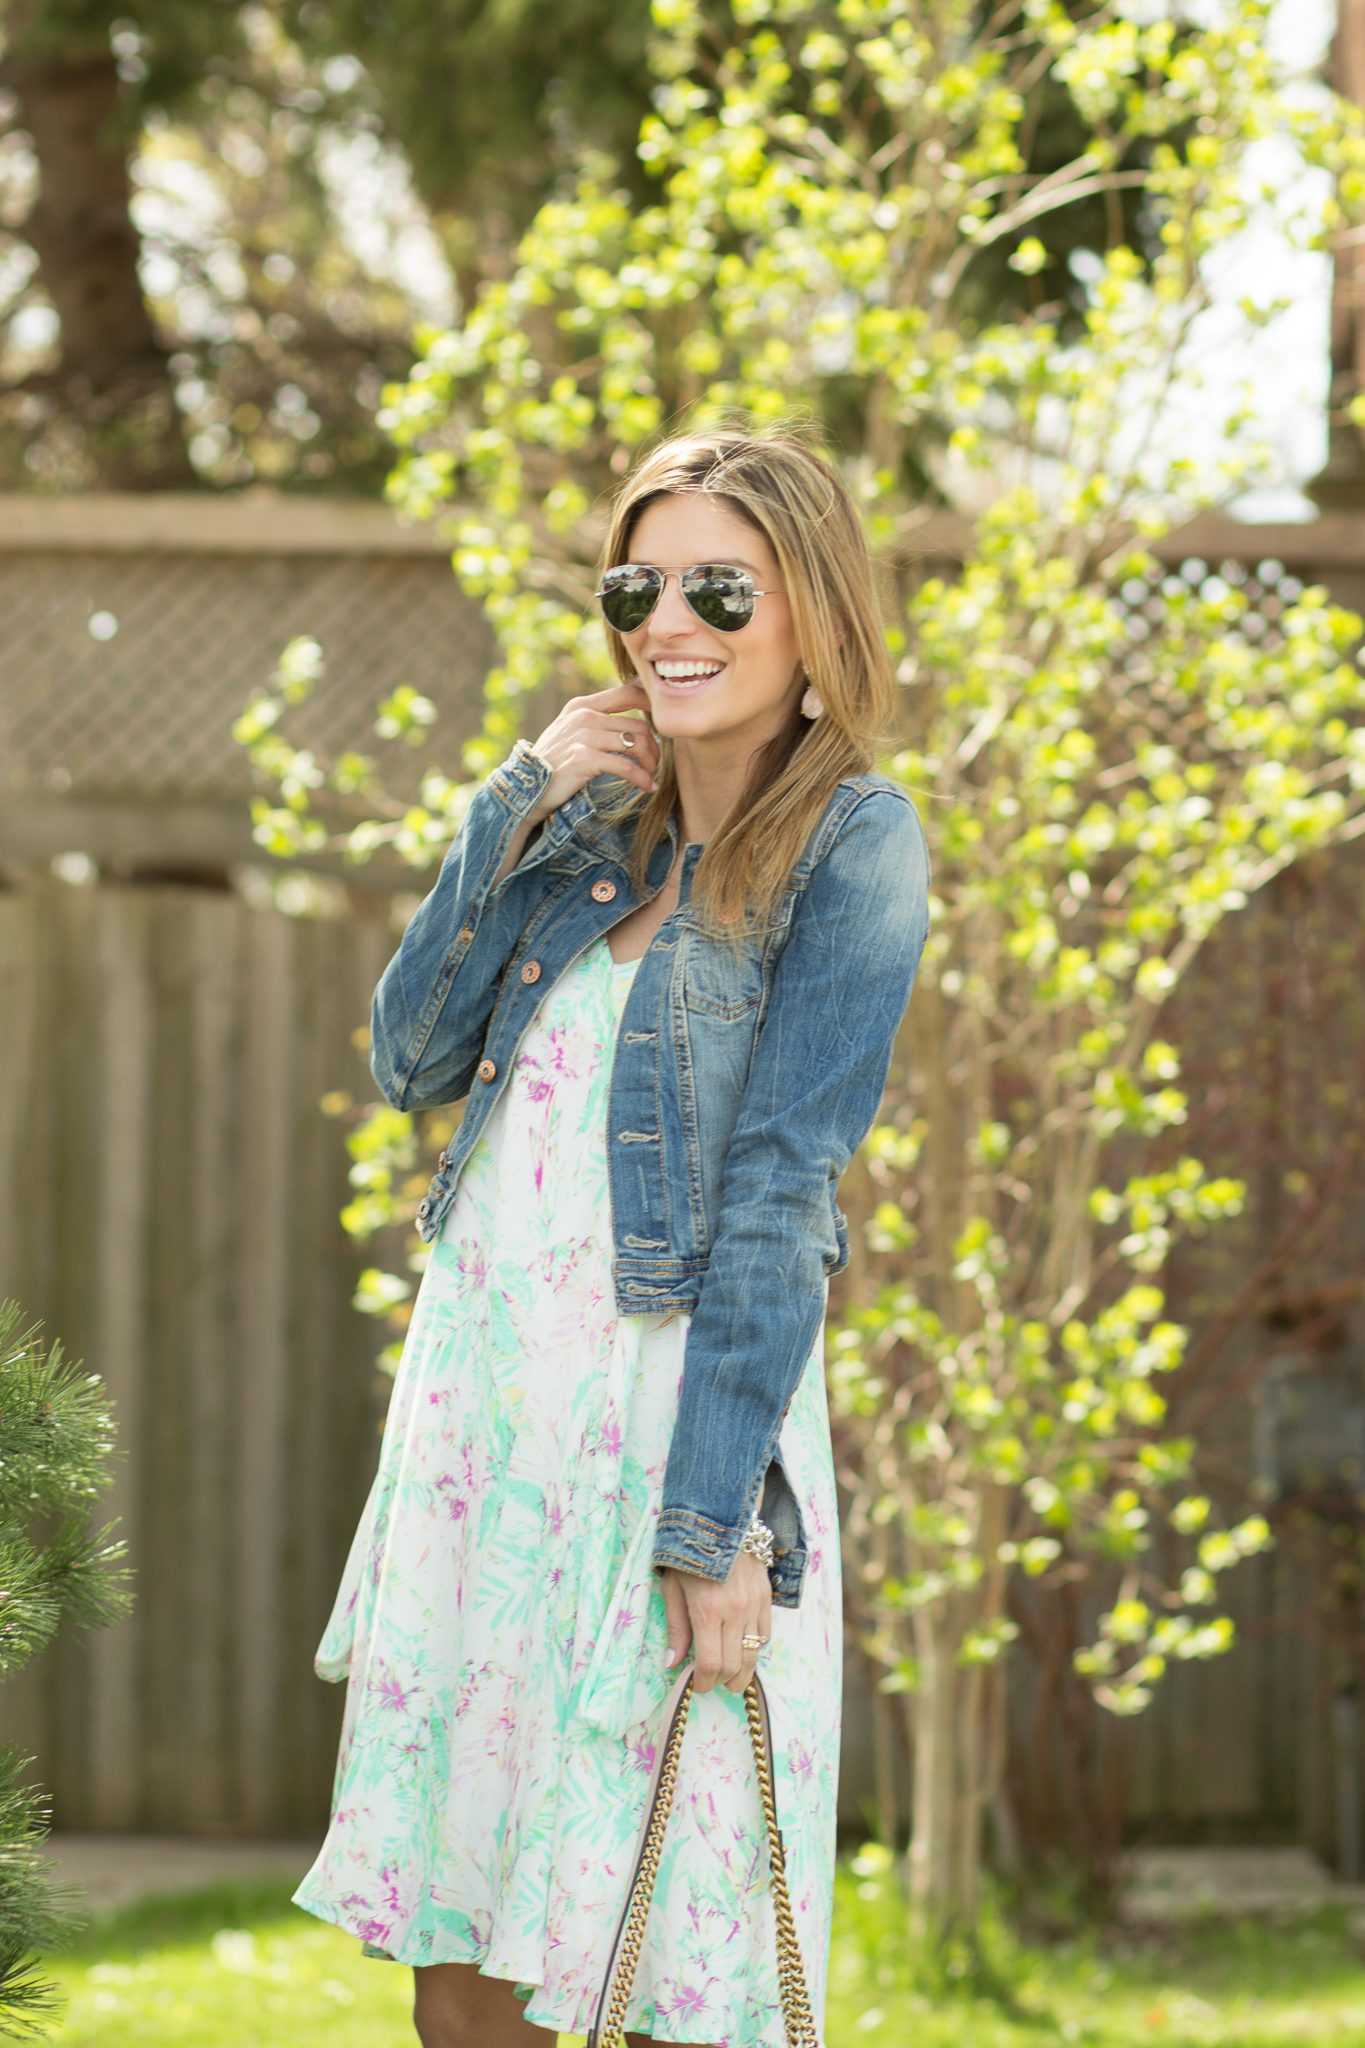 spring blogger style with floral dress and jean jacket